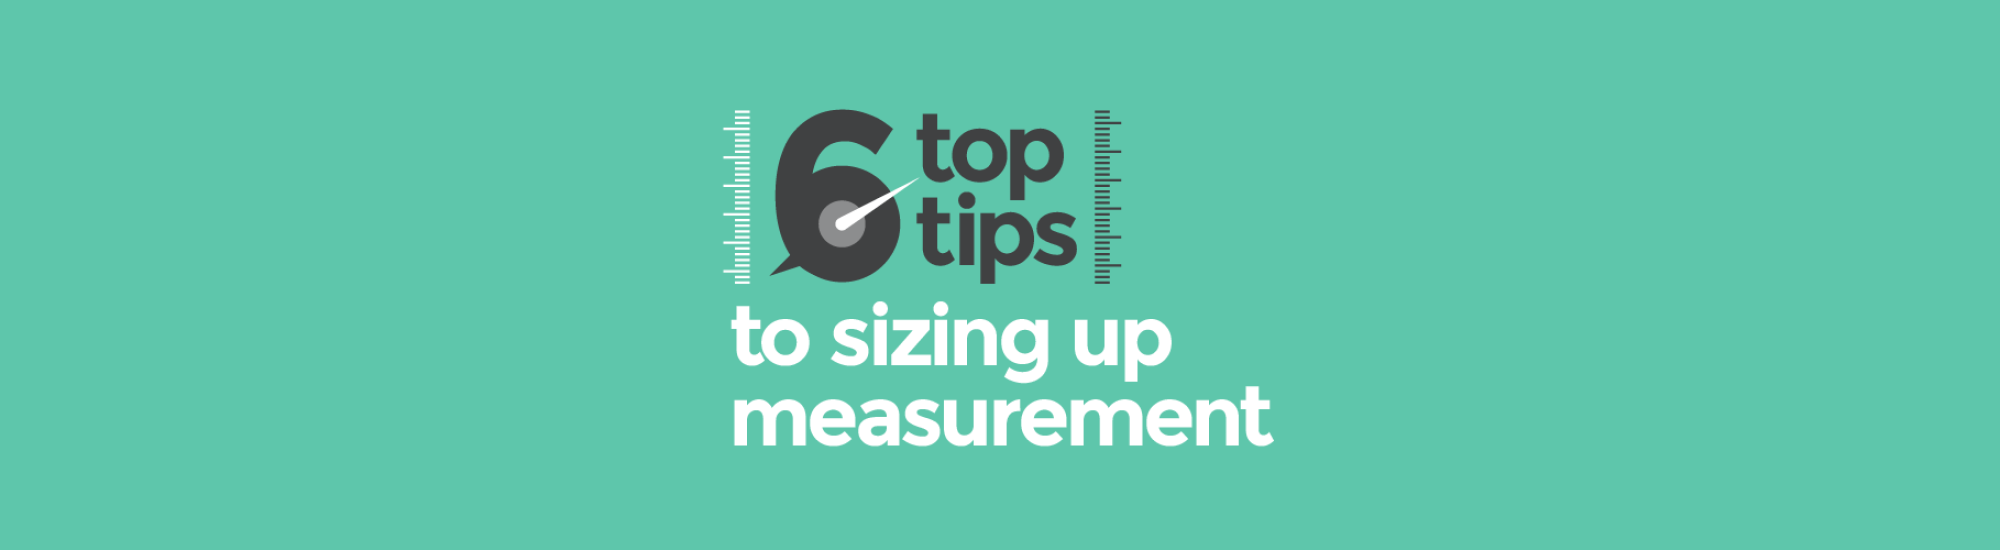 6 top tips to sizing up measurement HEAD